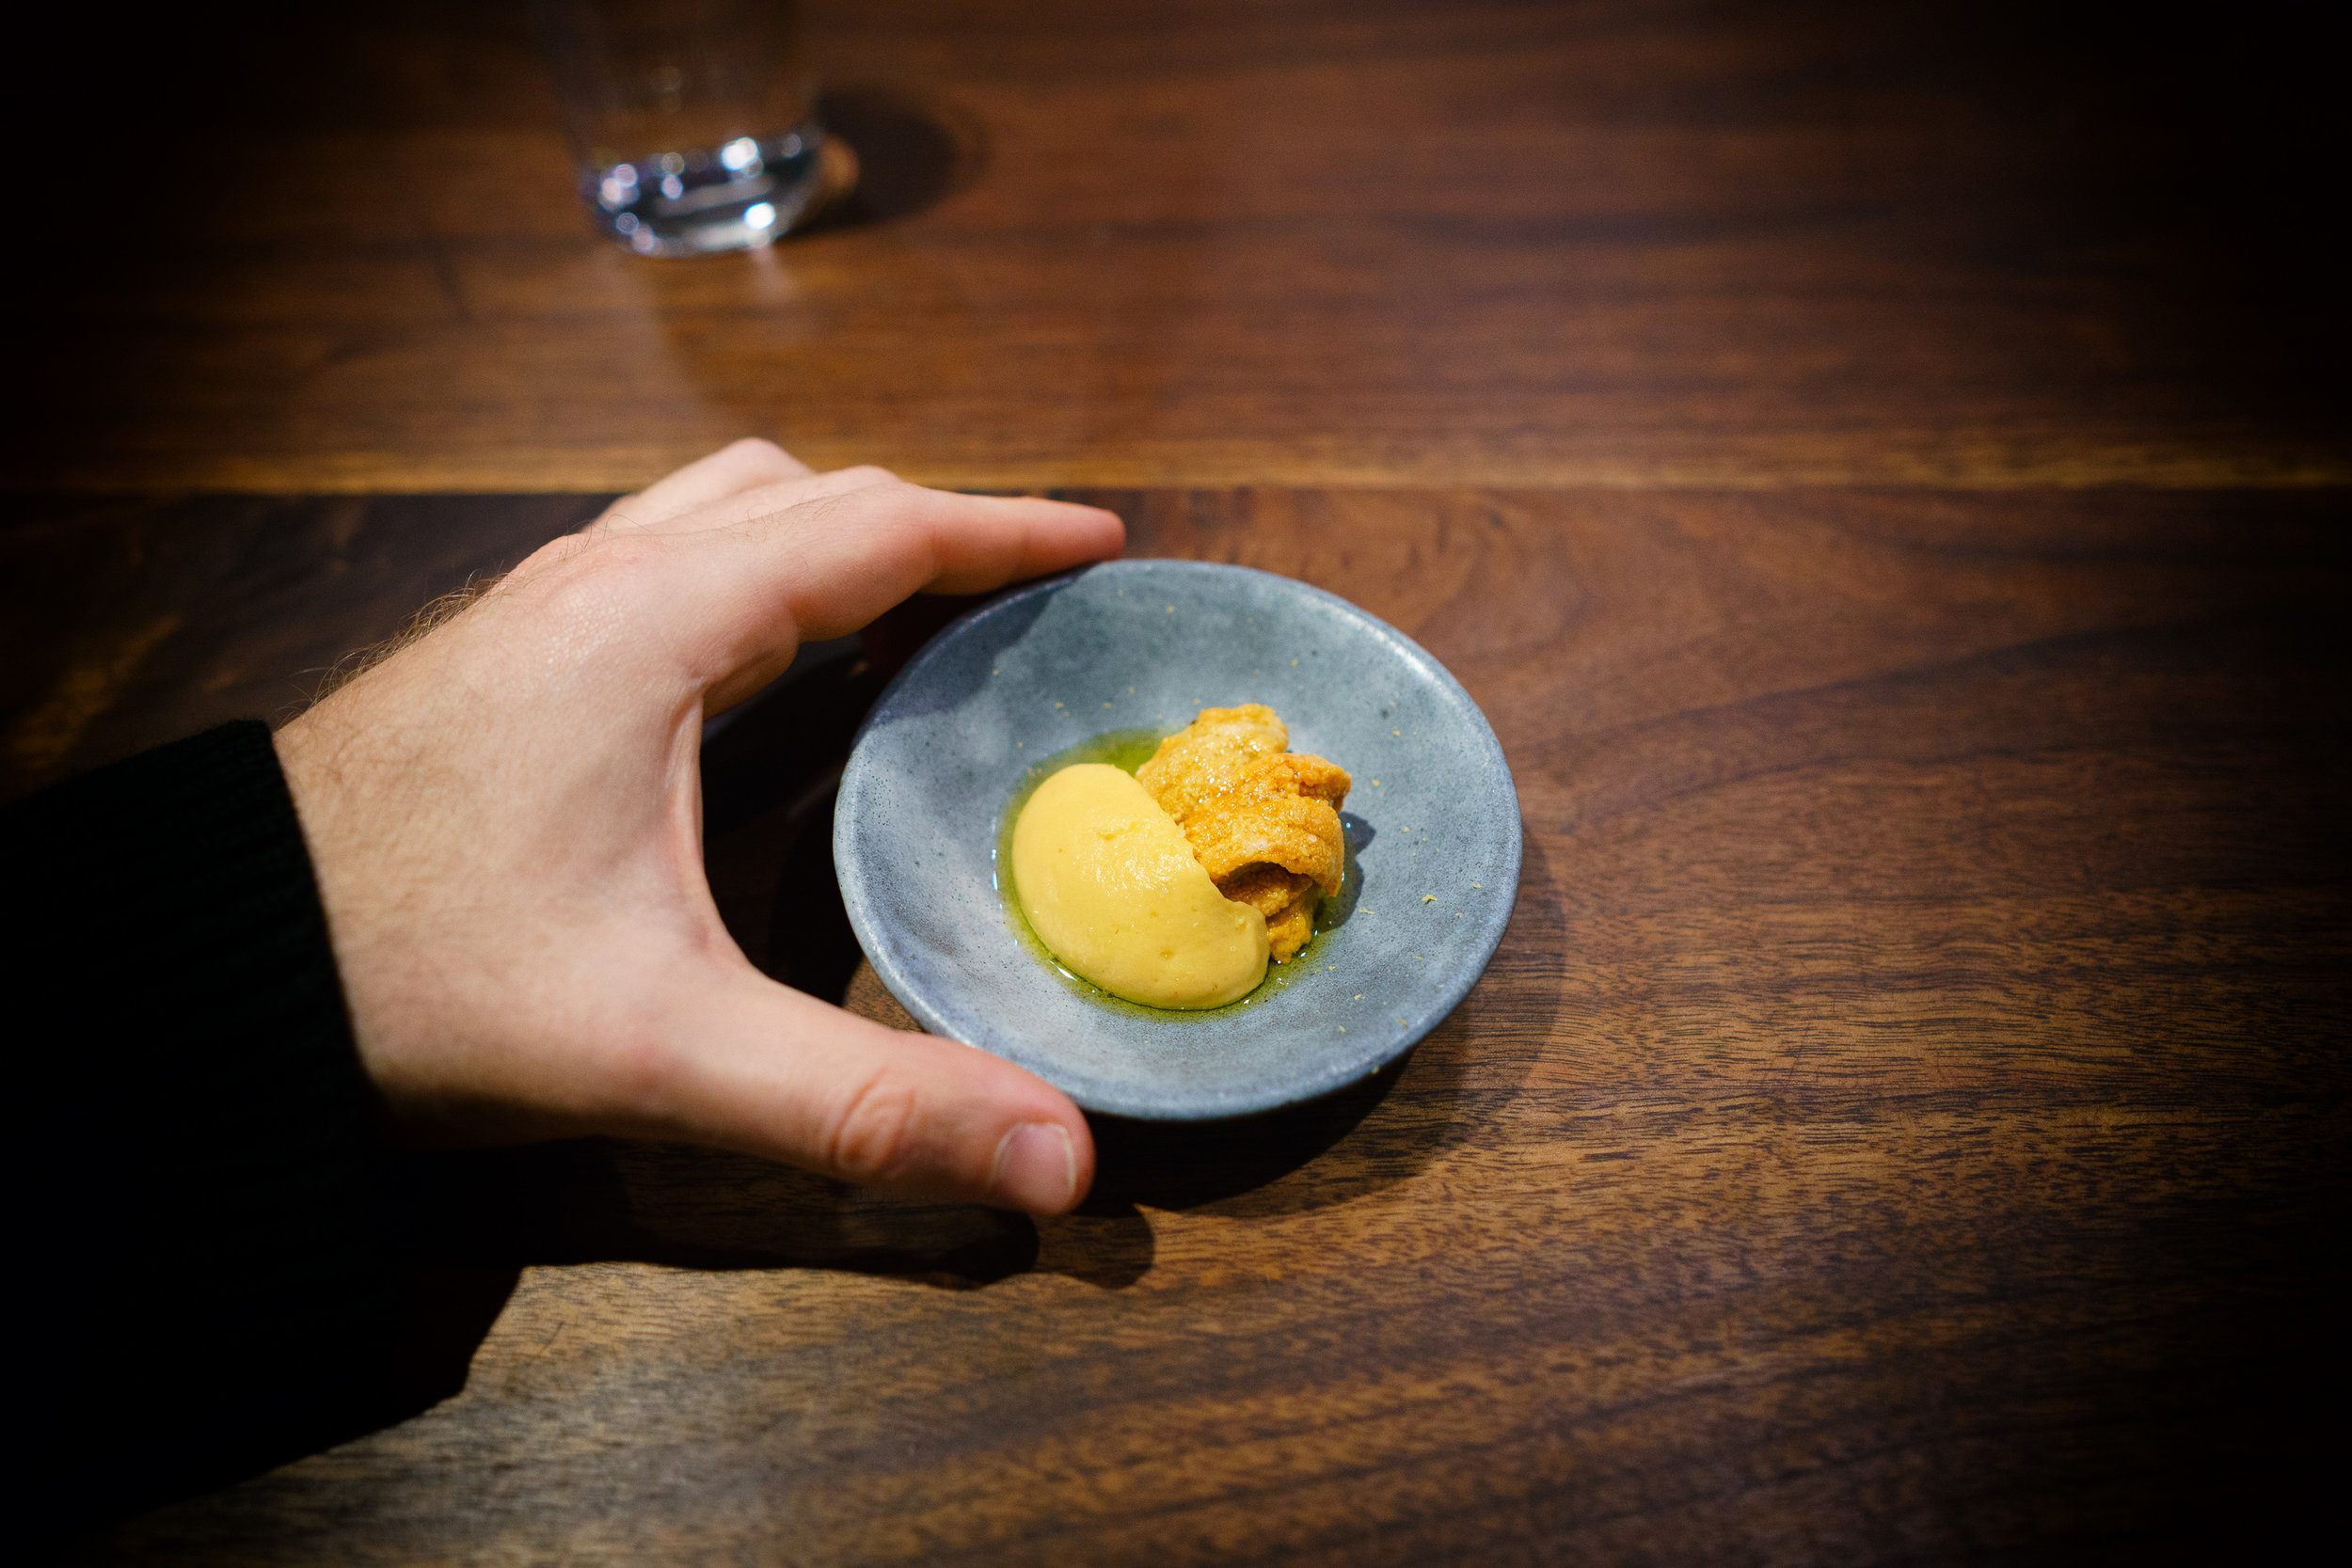 Sea urchin - chickpea, hozon